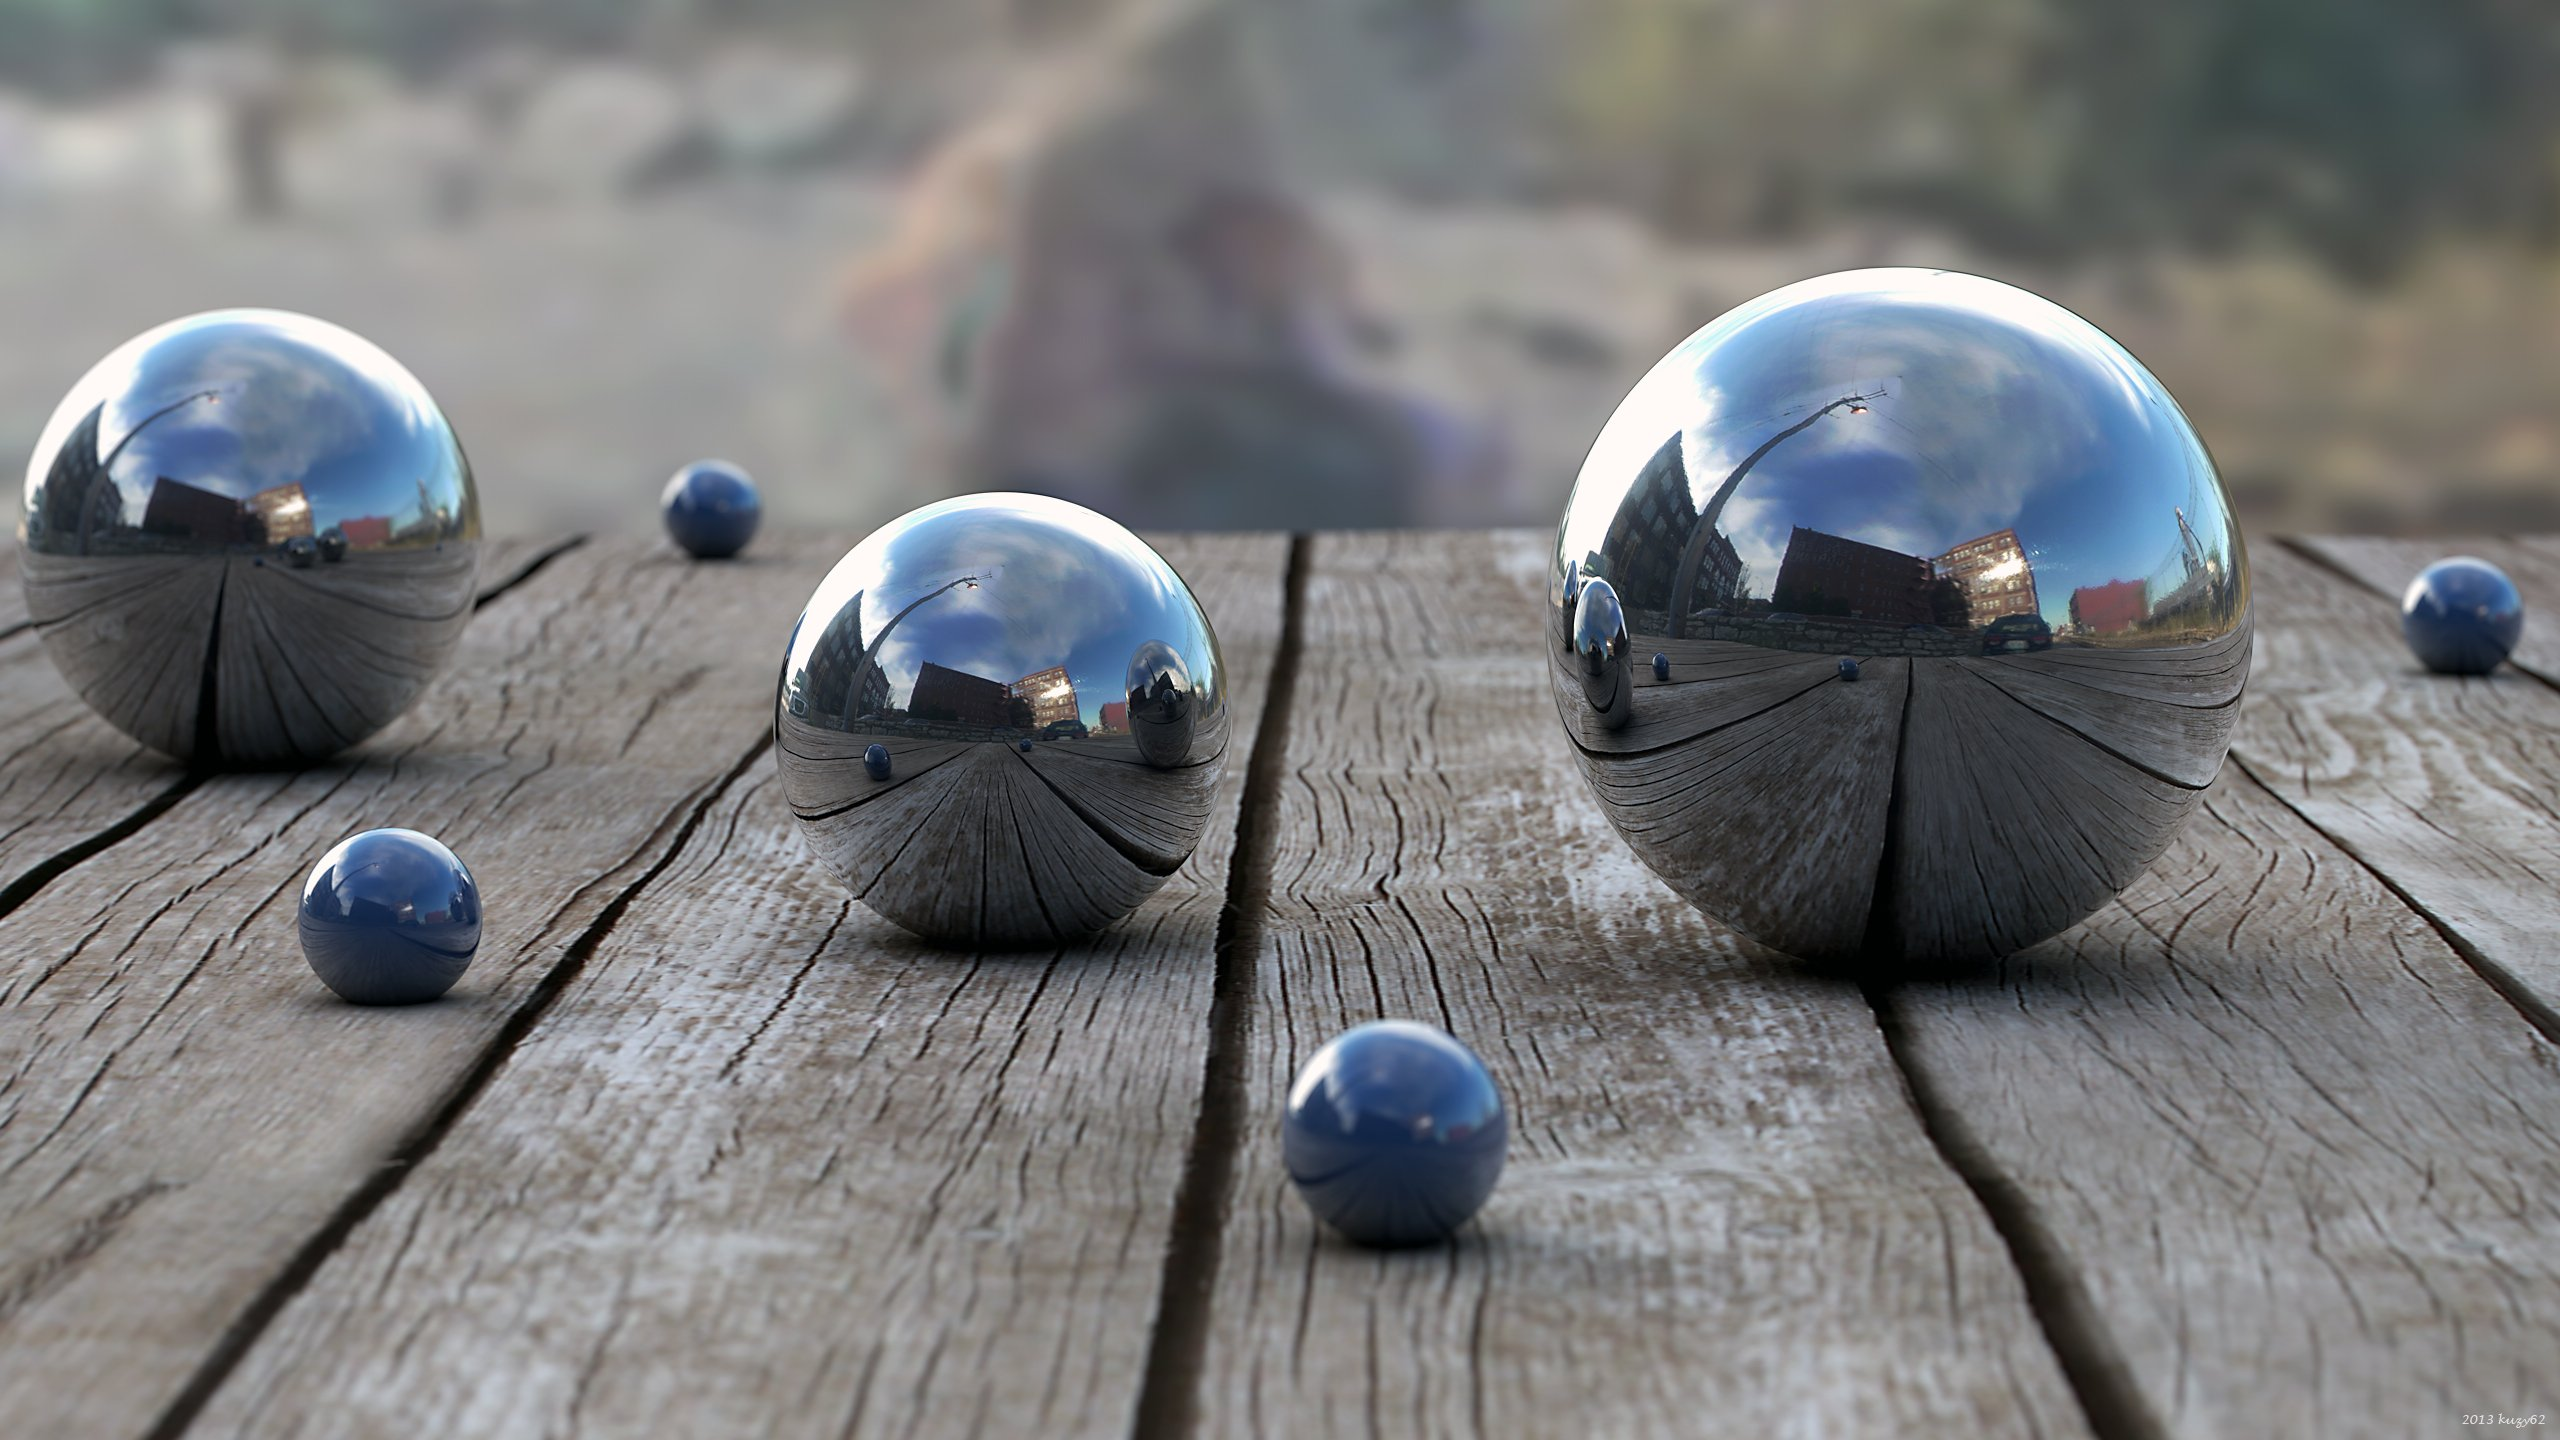 Balls Wood Reflection depth 3d bokeh wallpaper 2560x1440 48948 2560x1440